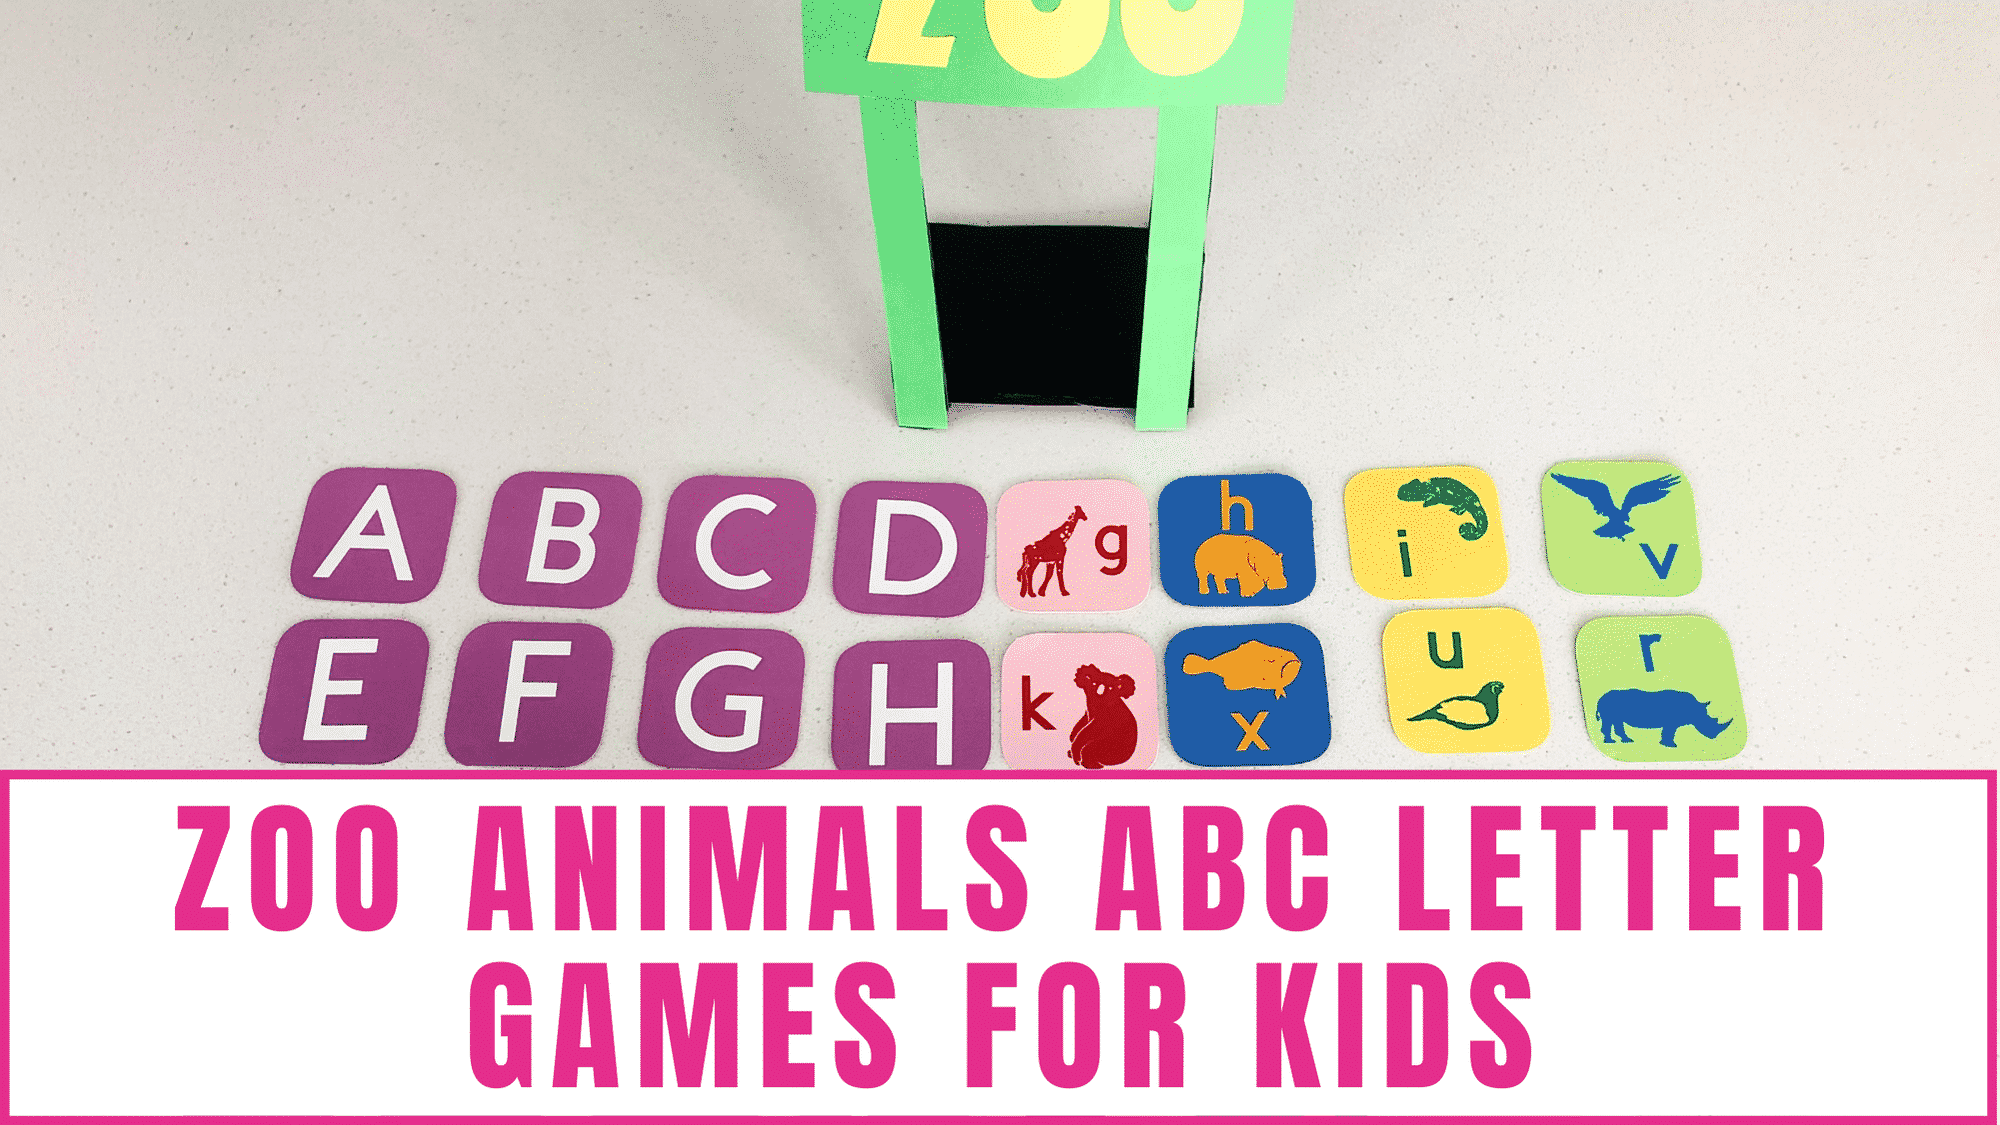 zoo animals ABC letter games for kids